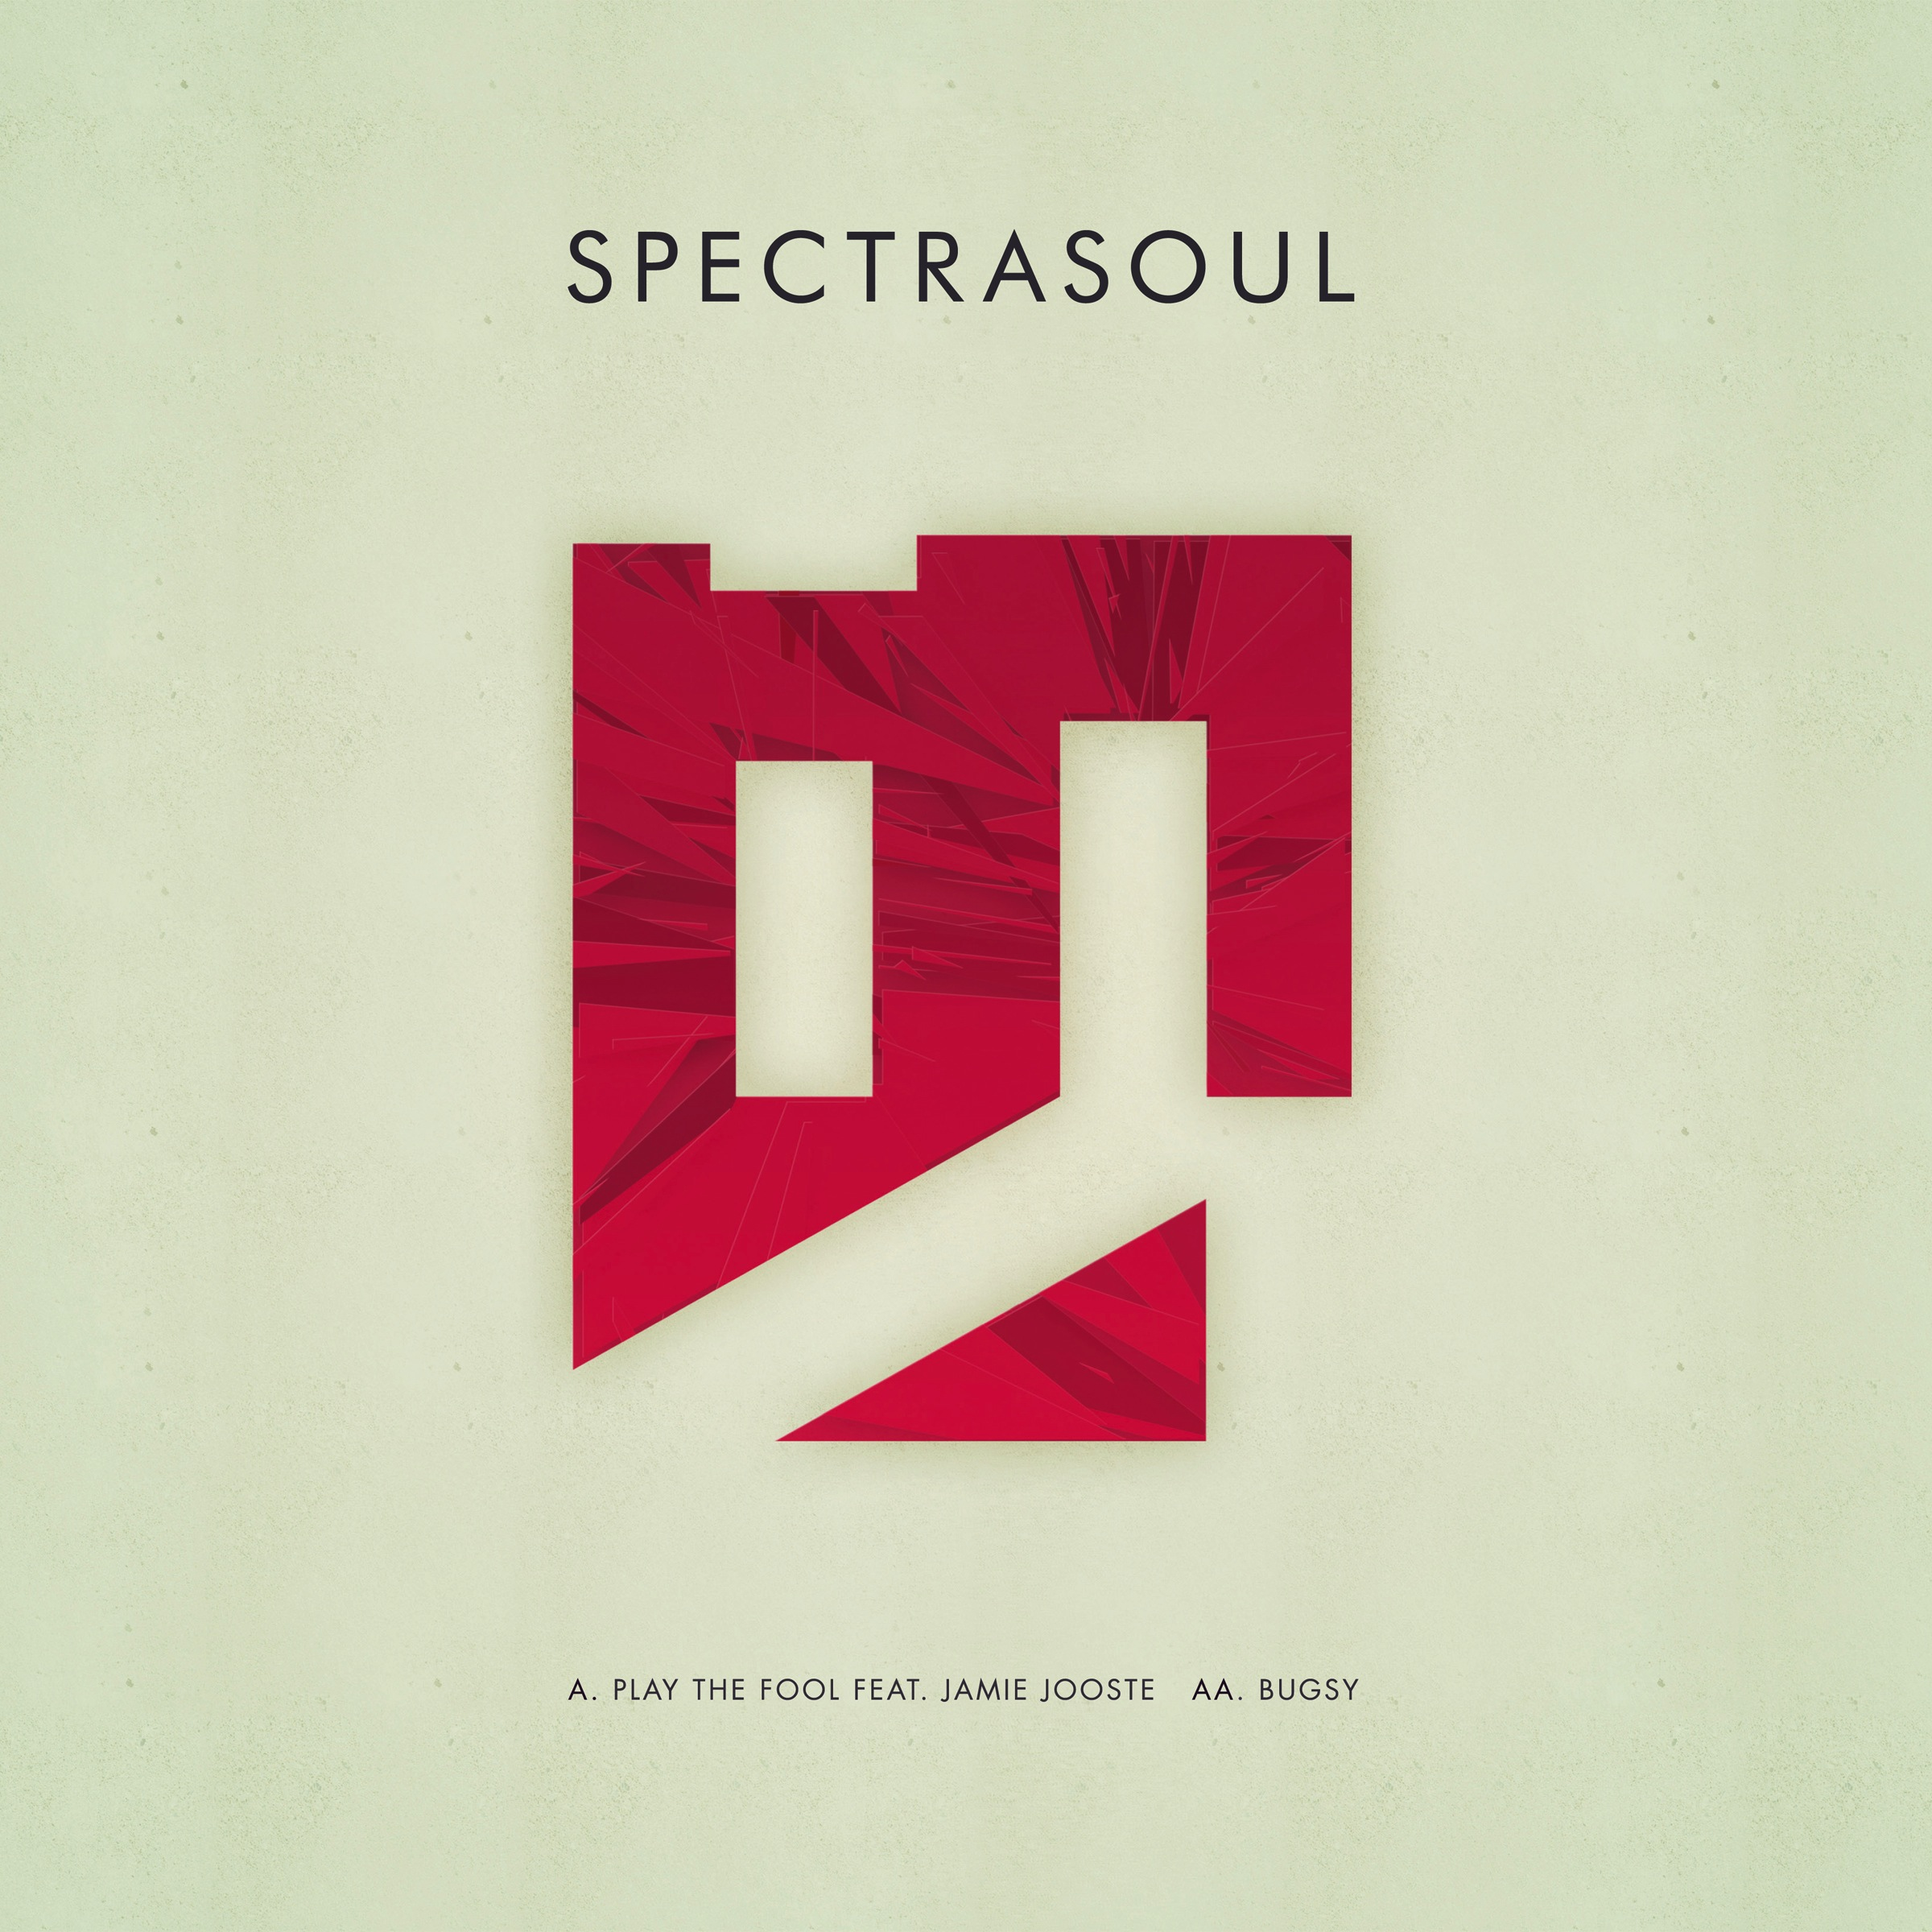 Spectrasoul/PLAY THE FOOL 12""